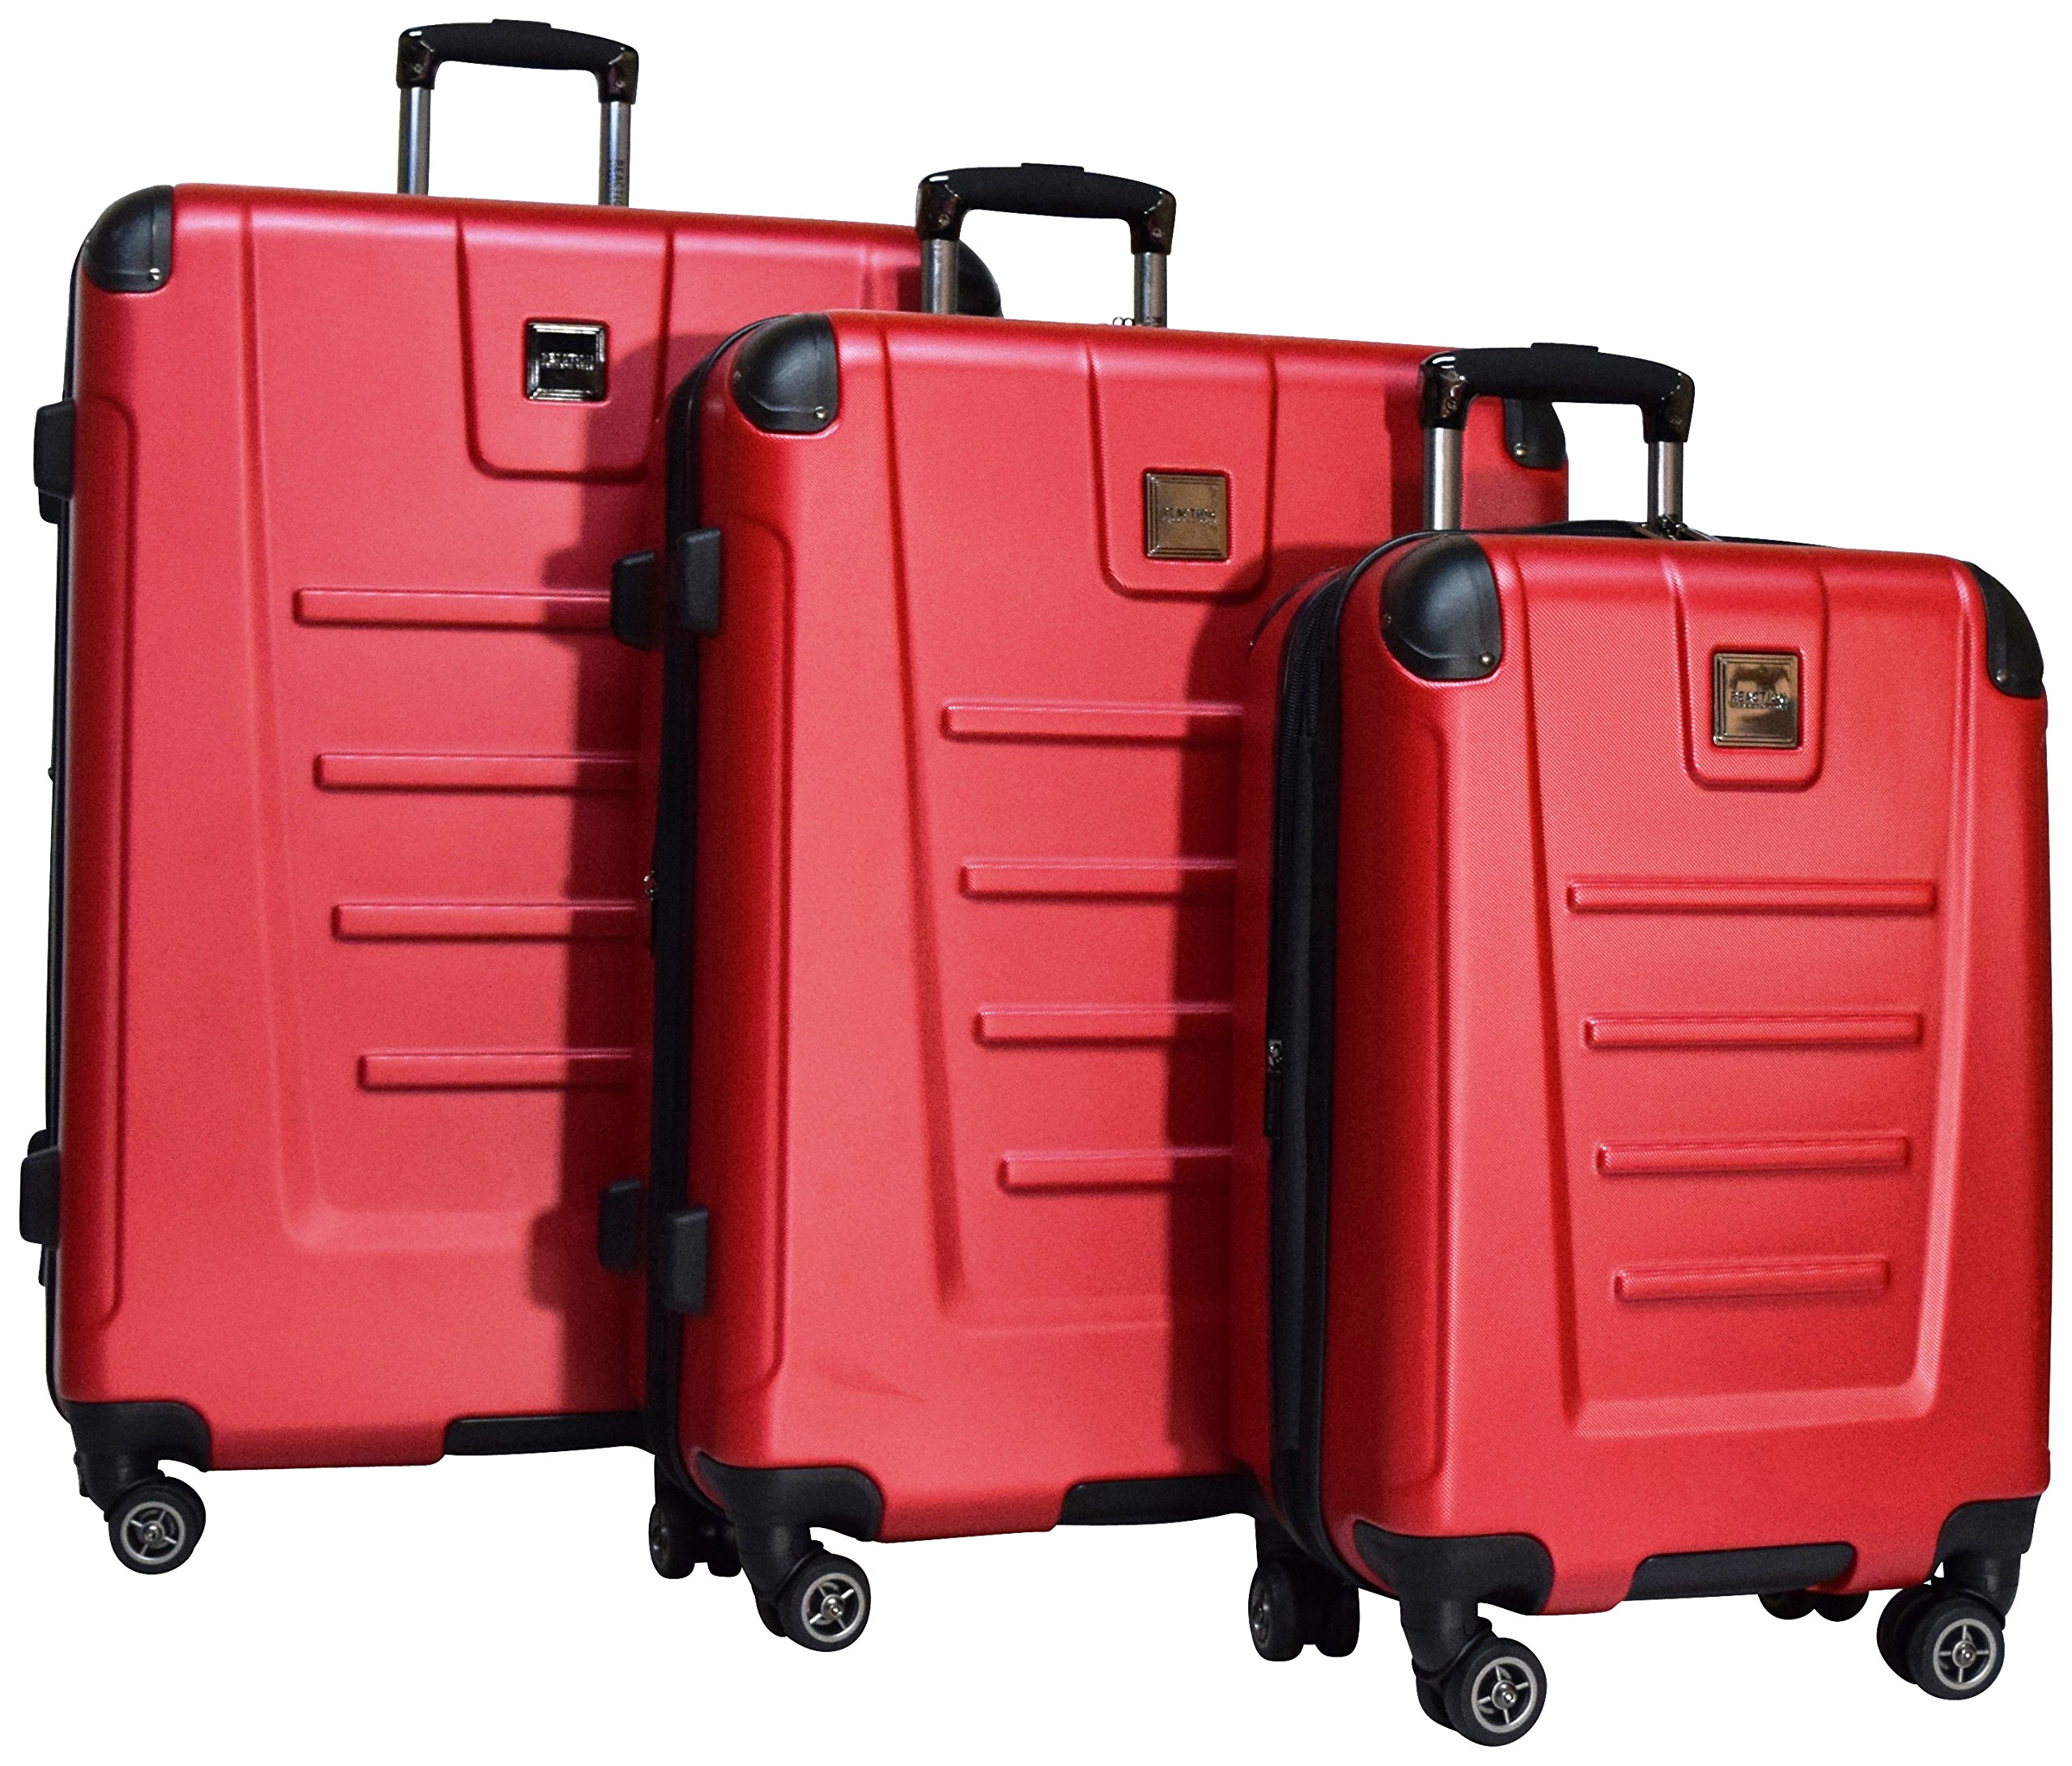 Kenneth Cole Reaction Get Away 3 Piece Expandable Spinner Set: 29'', 25'', and 20'' (Red) by Kenneth Cole REACTION